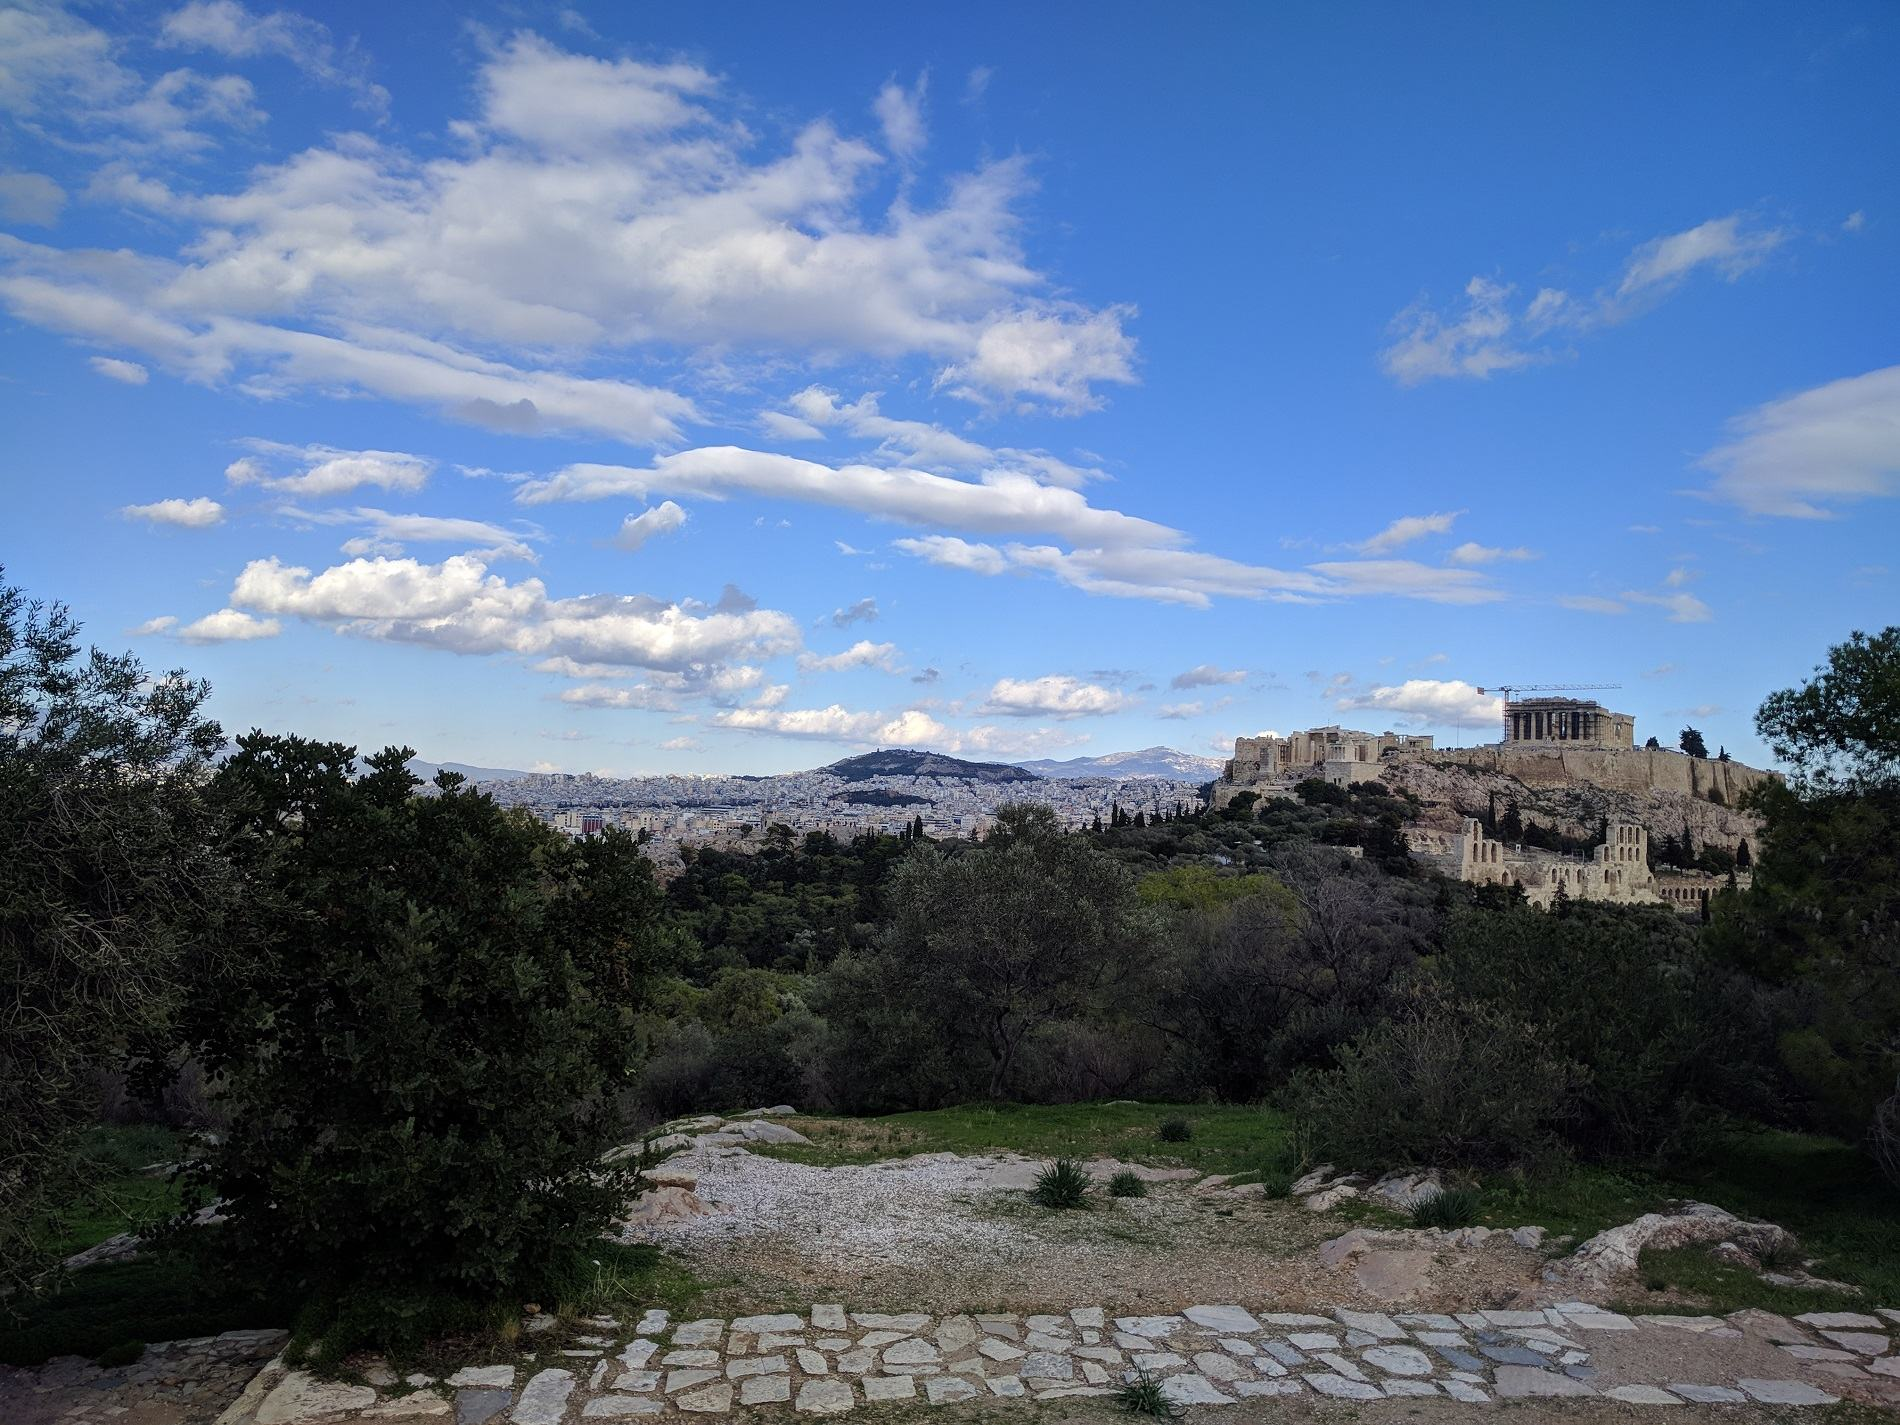 Amazing Acropolis view from Philopappou Hill. Source: Truevoyagers